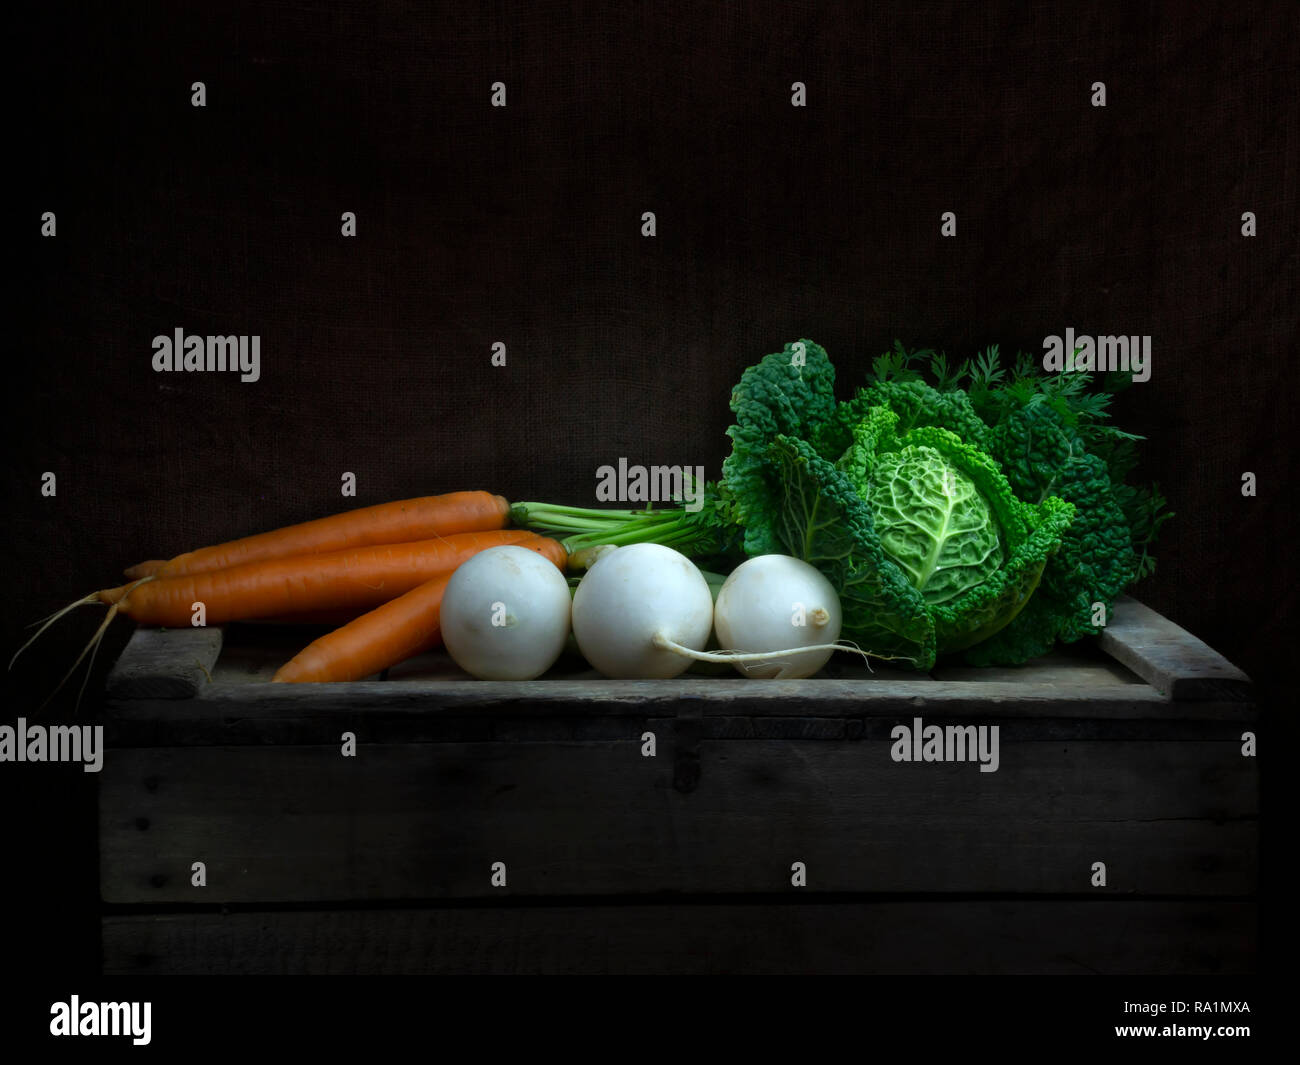 Winter vegetables still life, chiaroscuro Baroque style. Light painting. Cabbage, carrots, turnip. - Stock Image